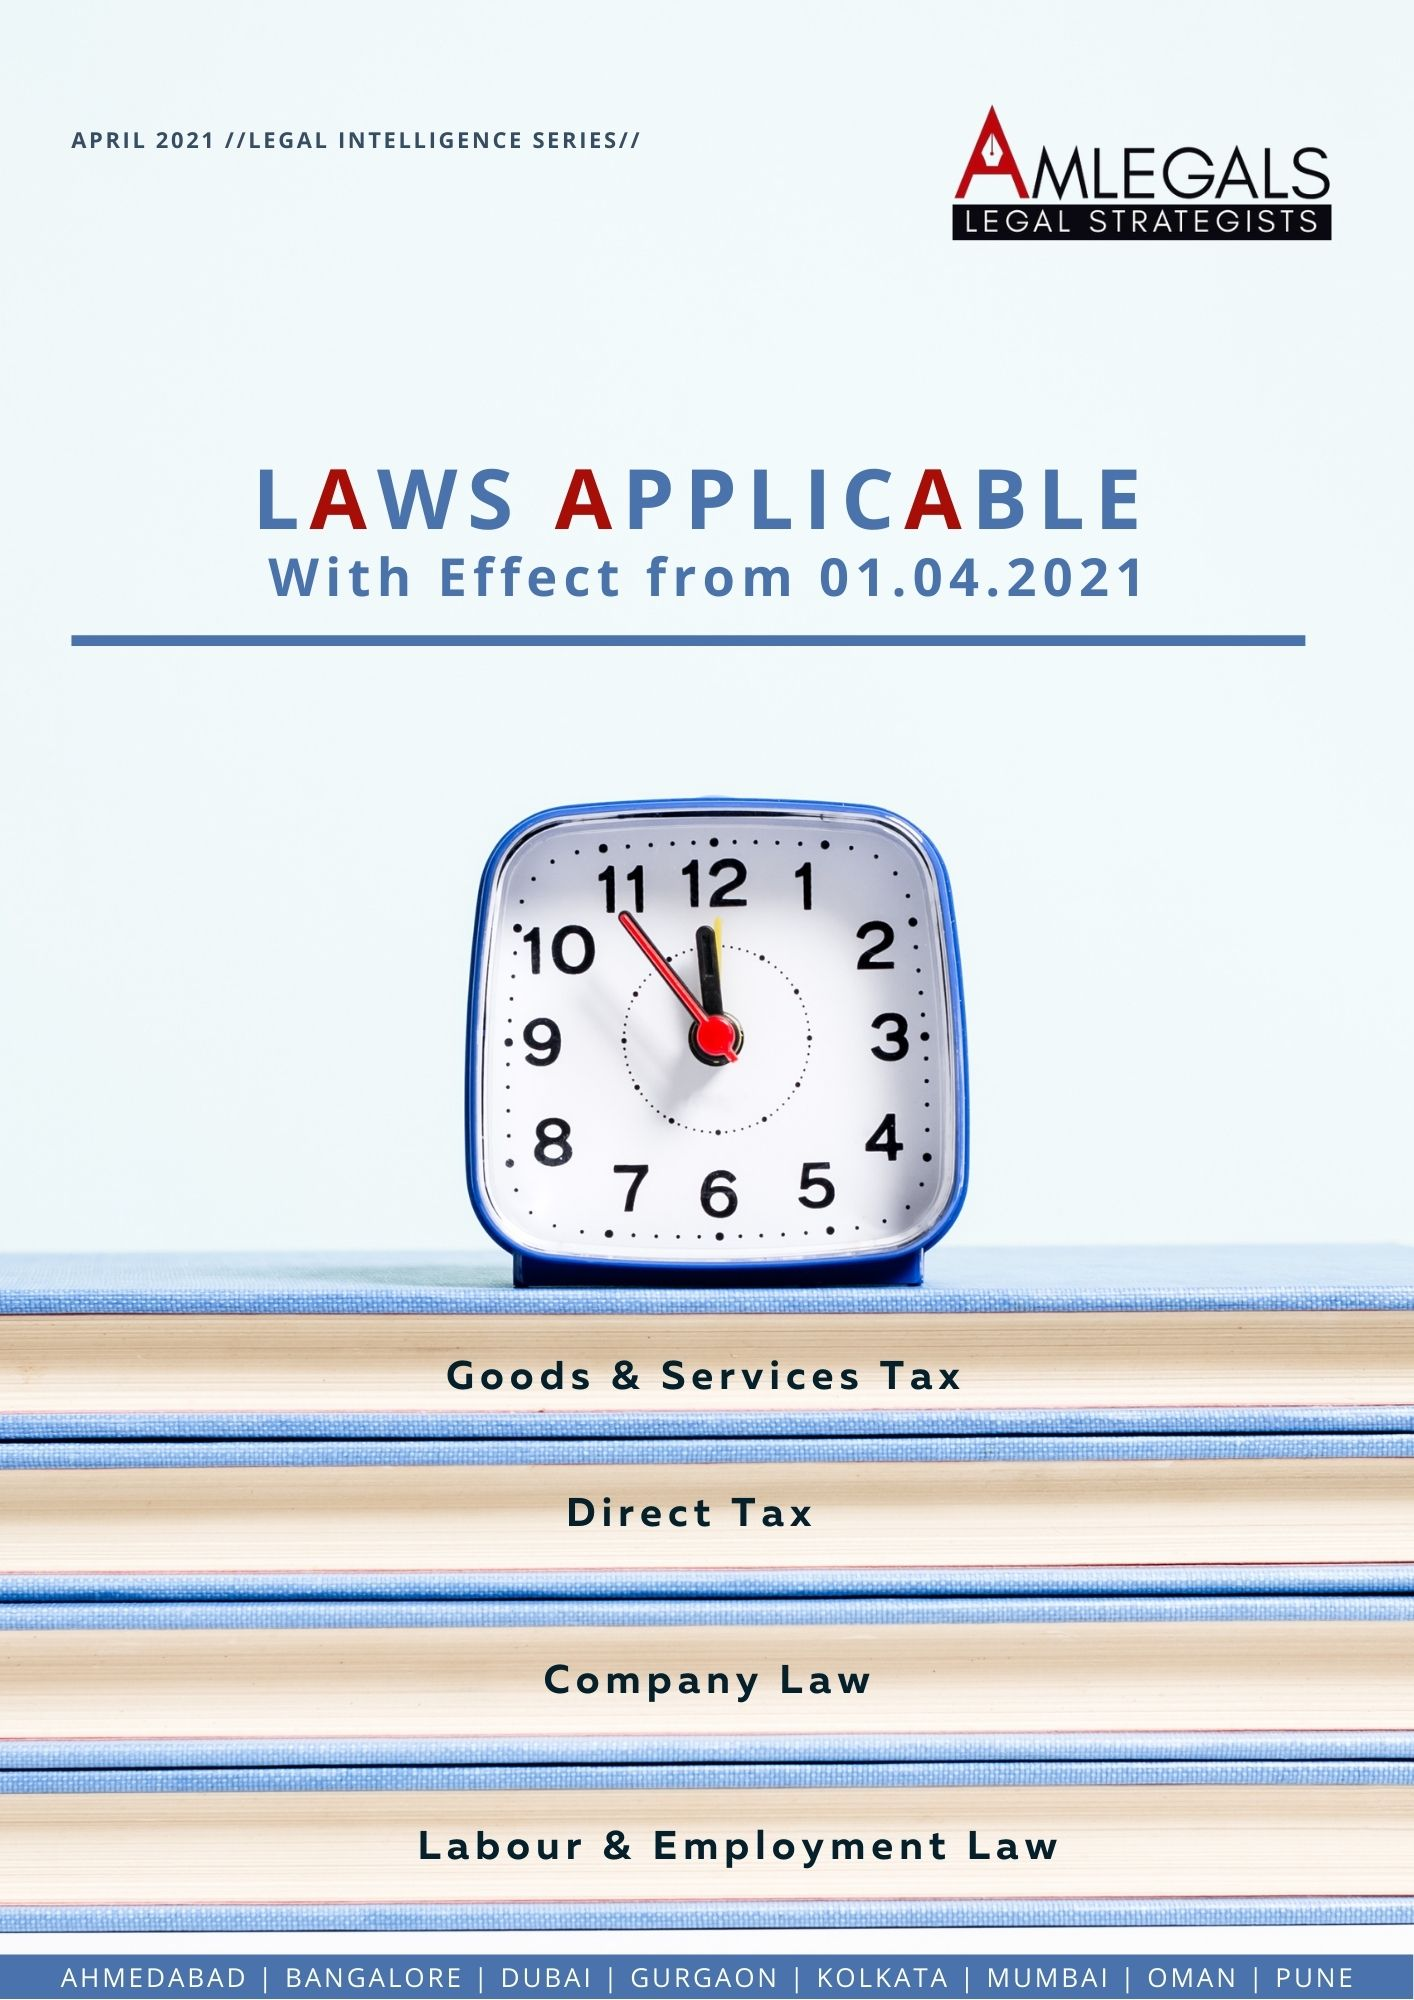 Laws Applicable from 01.04.2021